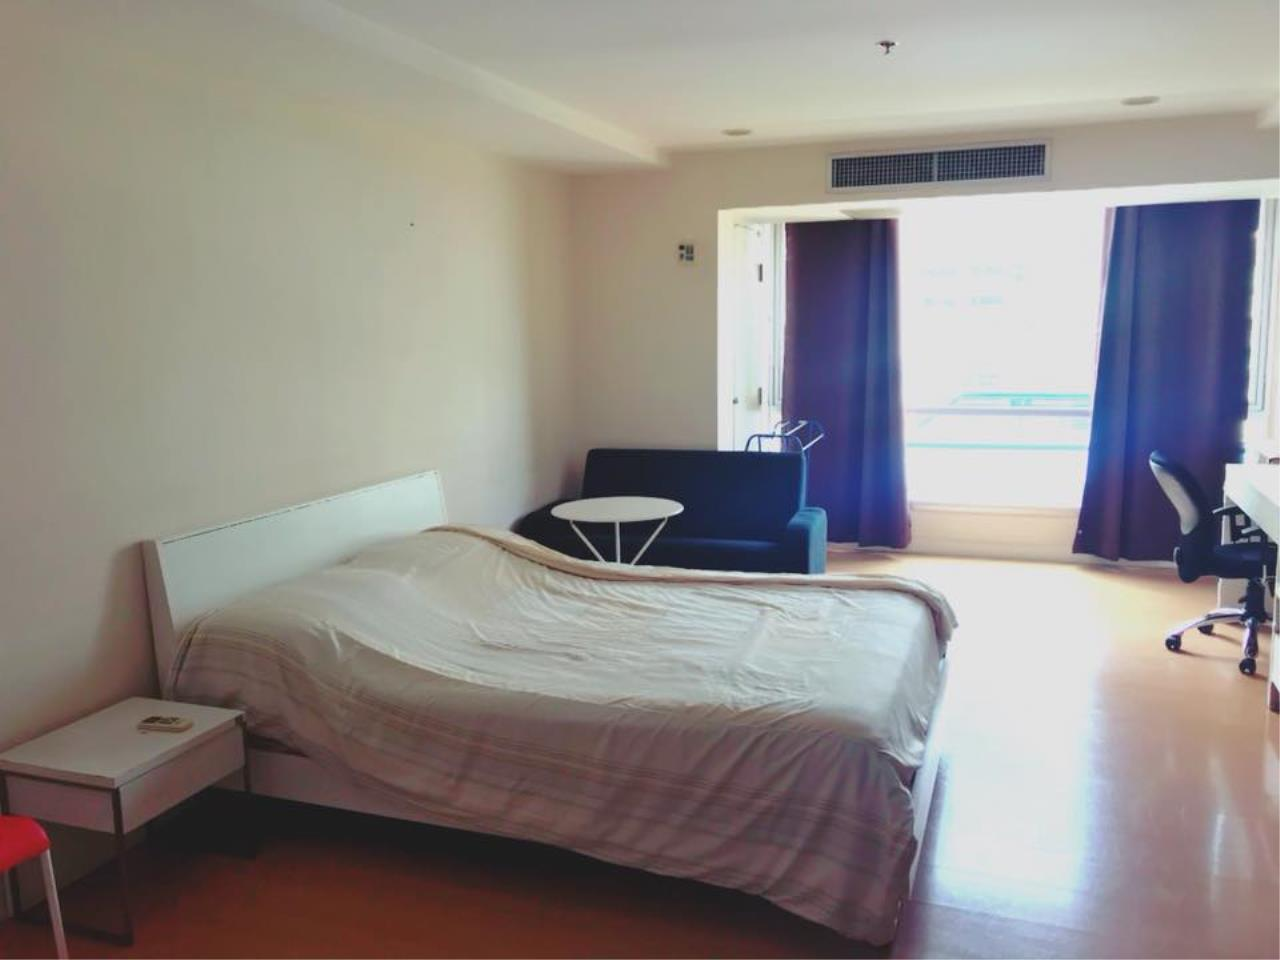 Quality Life Property Agency's **** For Rent*******  At The Trendy Condominium , Wide Area, Facing East , Floor 1x , Fully Furnished Ready To Move In 3